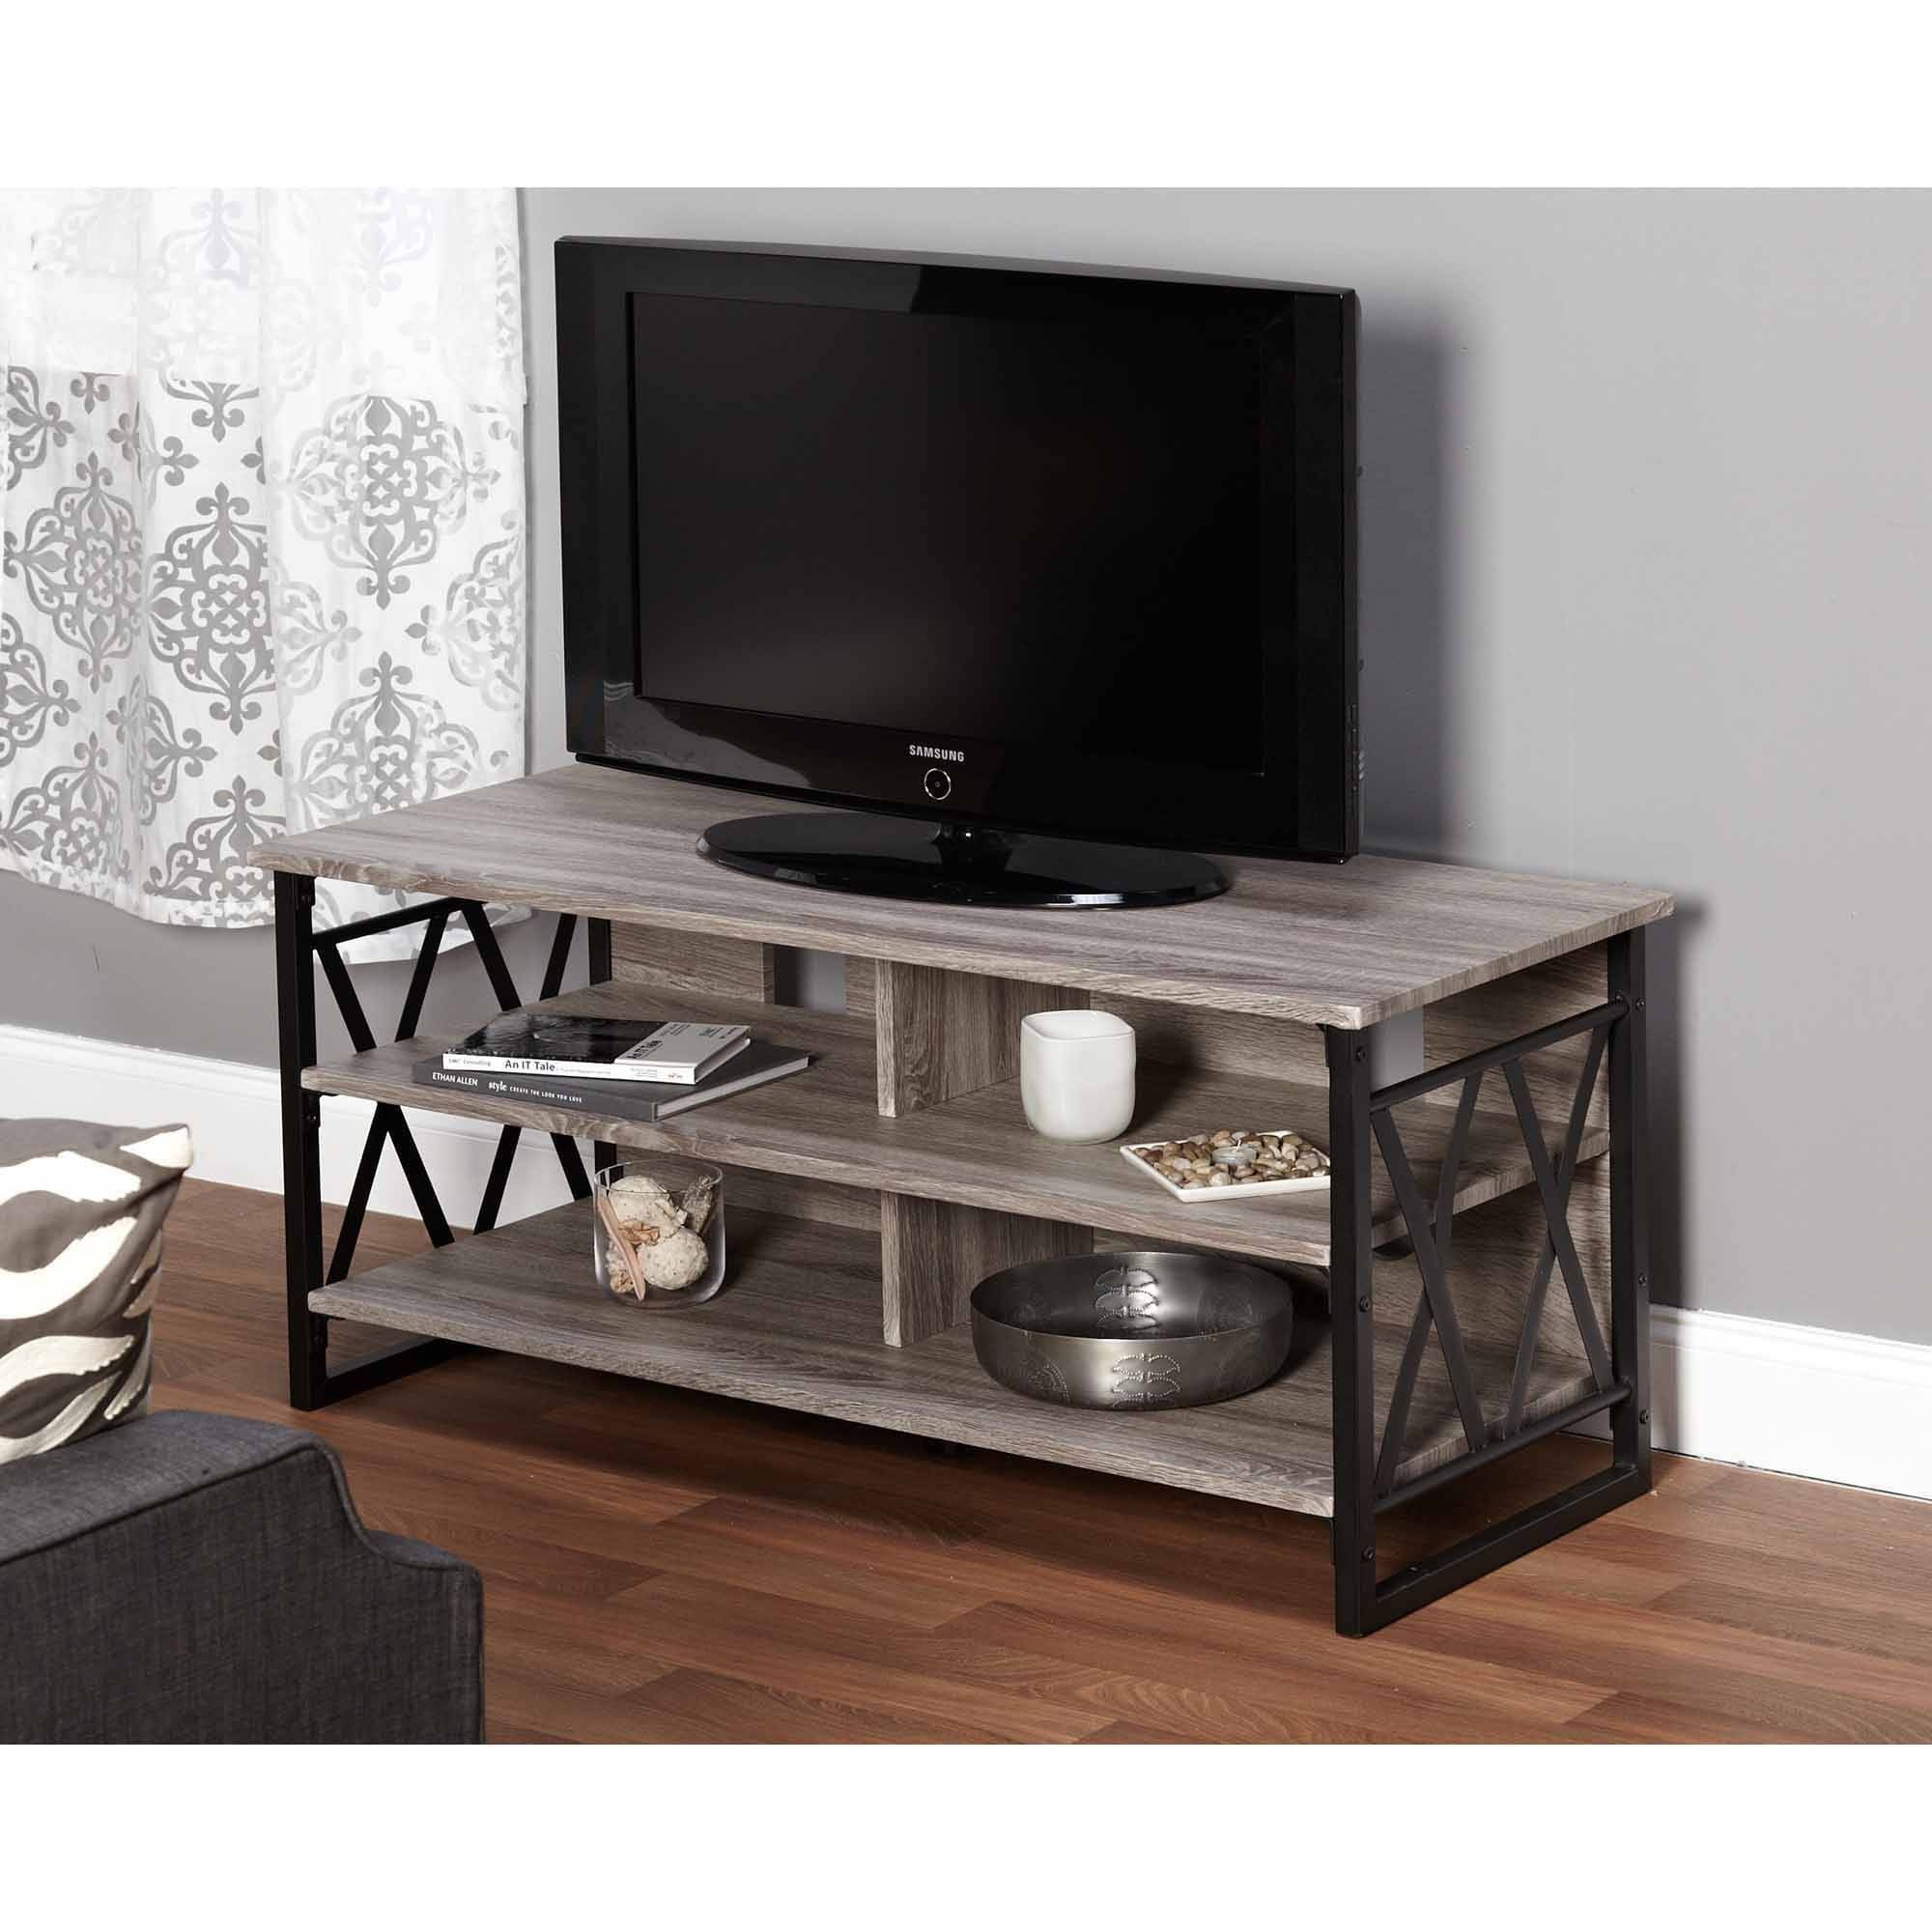 Charming Light Wood Tv Stand 75 For Your Home Decorating Ideas inside Grey Wood Tv Stands (Image 3 of 15)